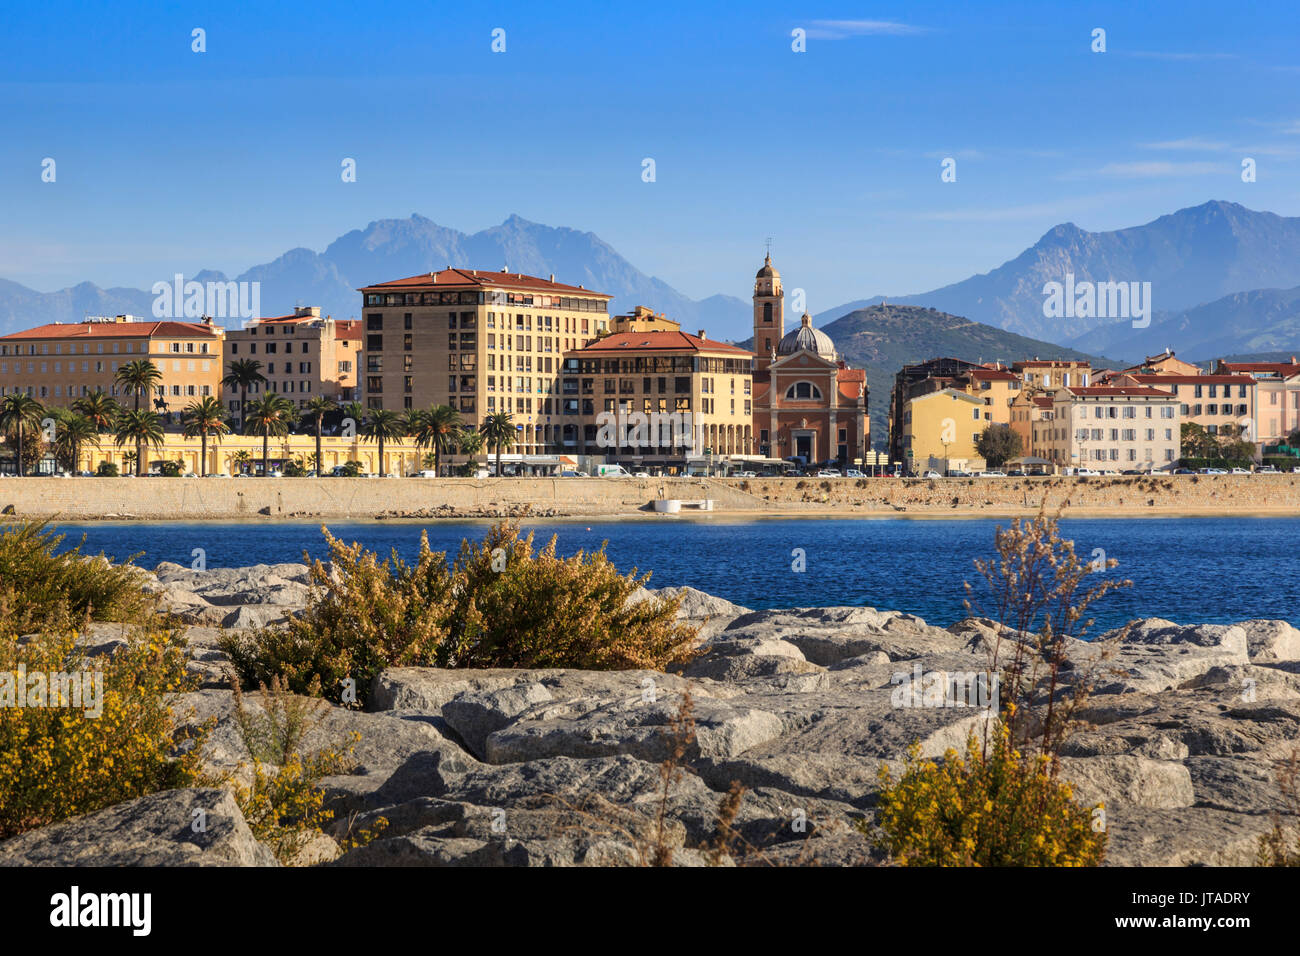 Cathedral, city and hazy mountains, from its rocky waterfont, Ajaccio, Island of Corsica, Mediterranean, France, - Stock Image